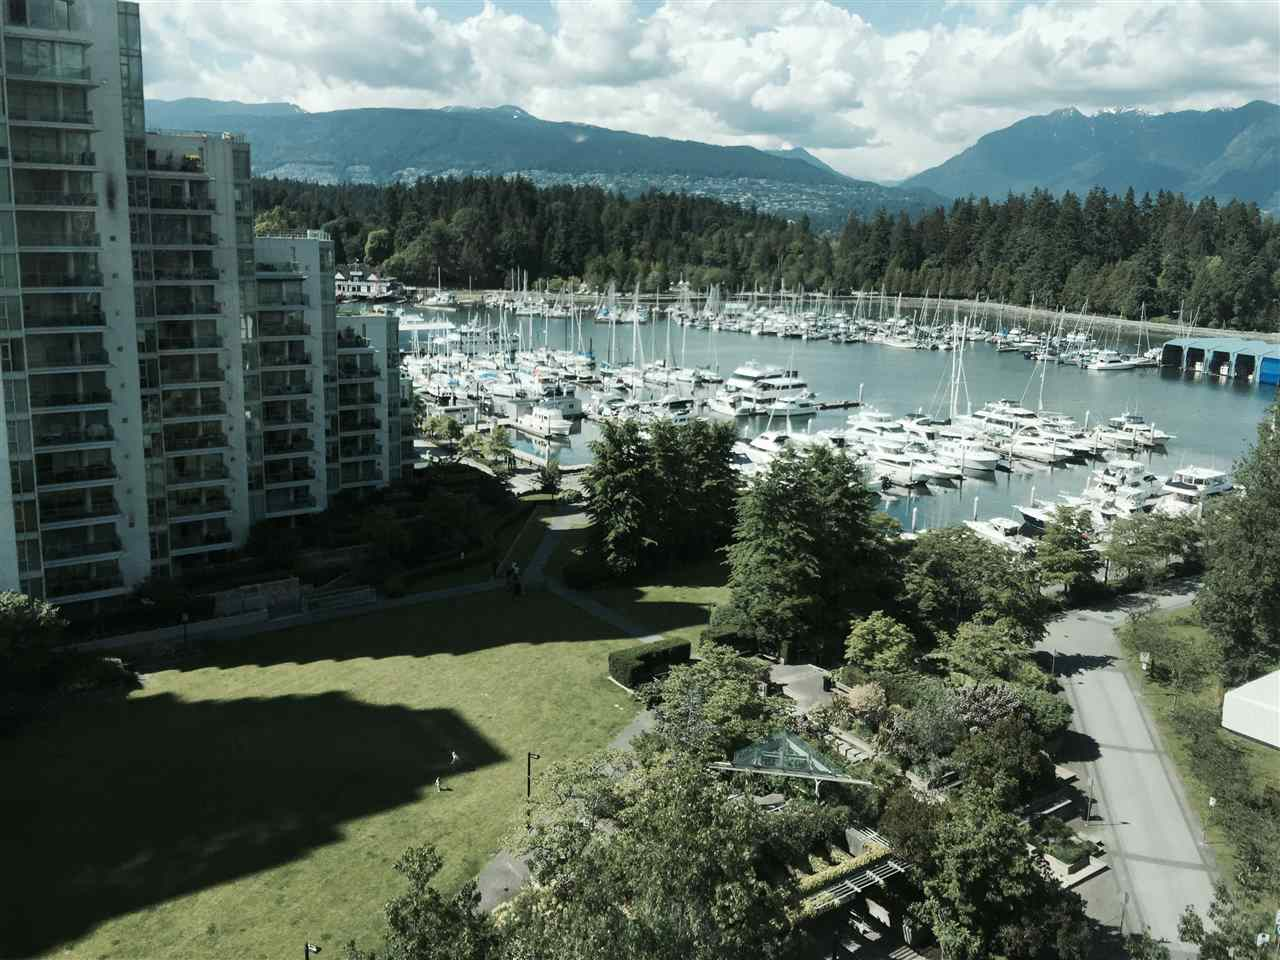 Main Photo: 1201 1650 BAYSHORE Drive in Vancouver: Coal Harbour Condo for sale (Vancouver West)  : MLS® # R2175467